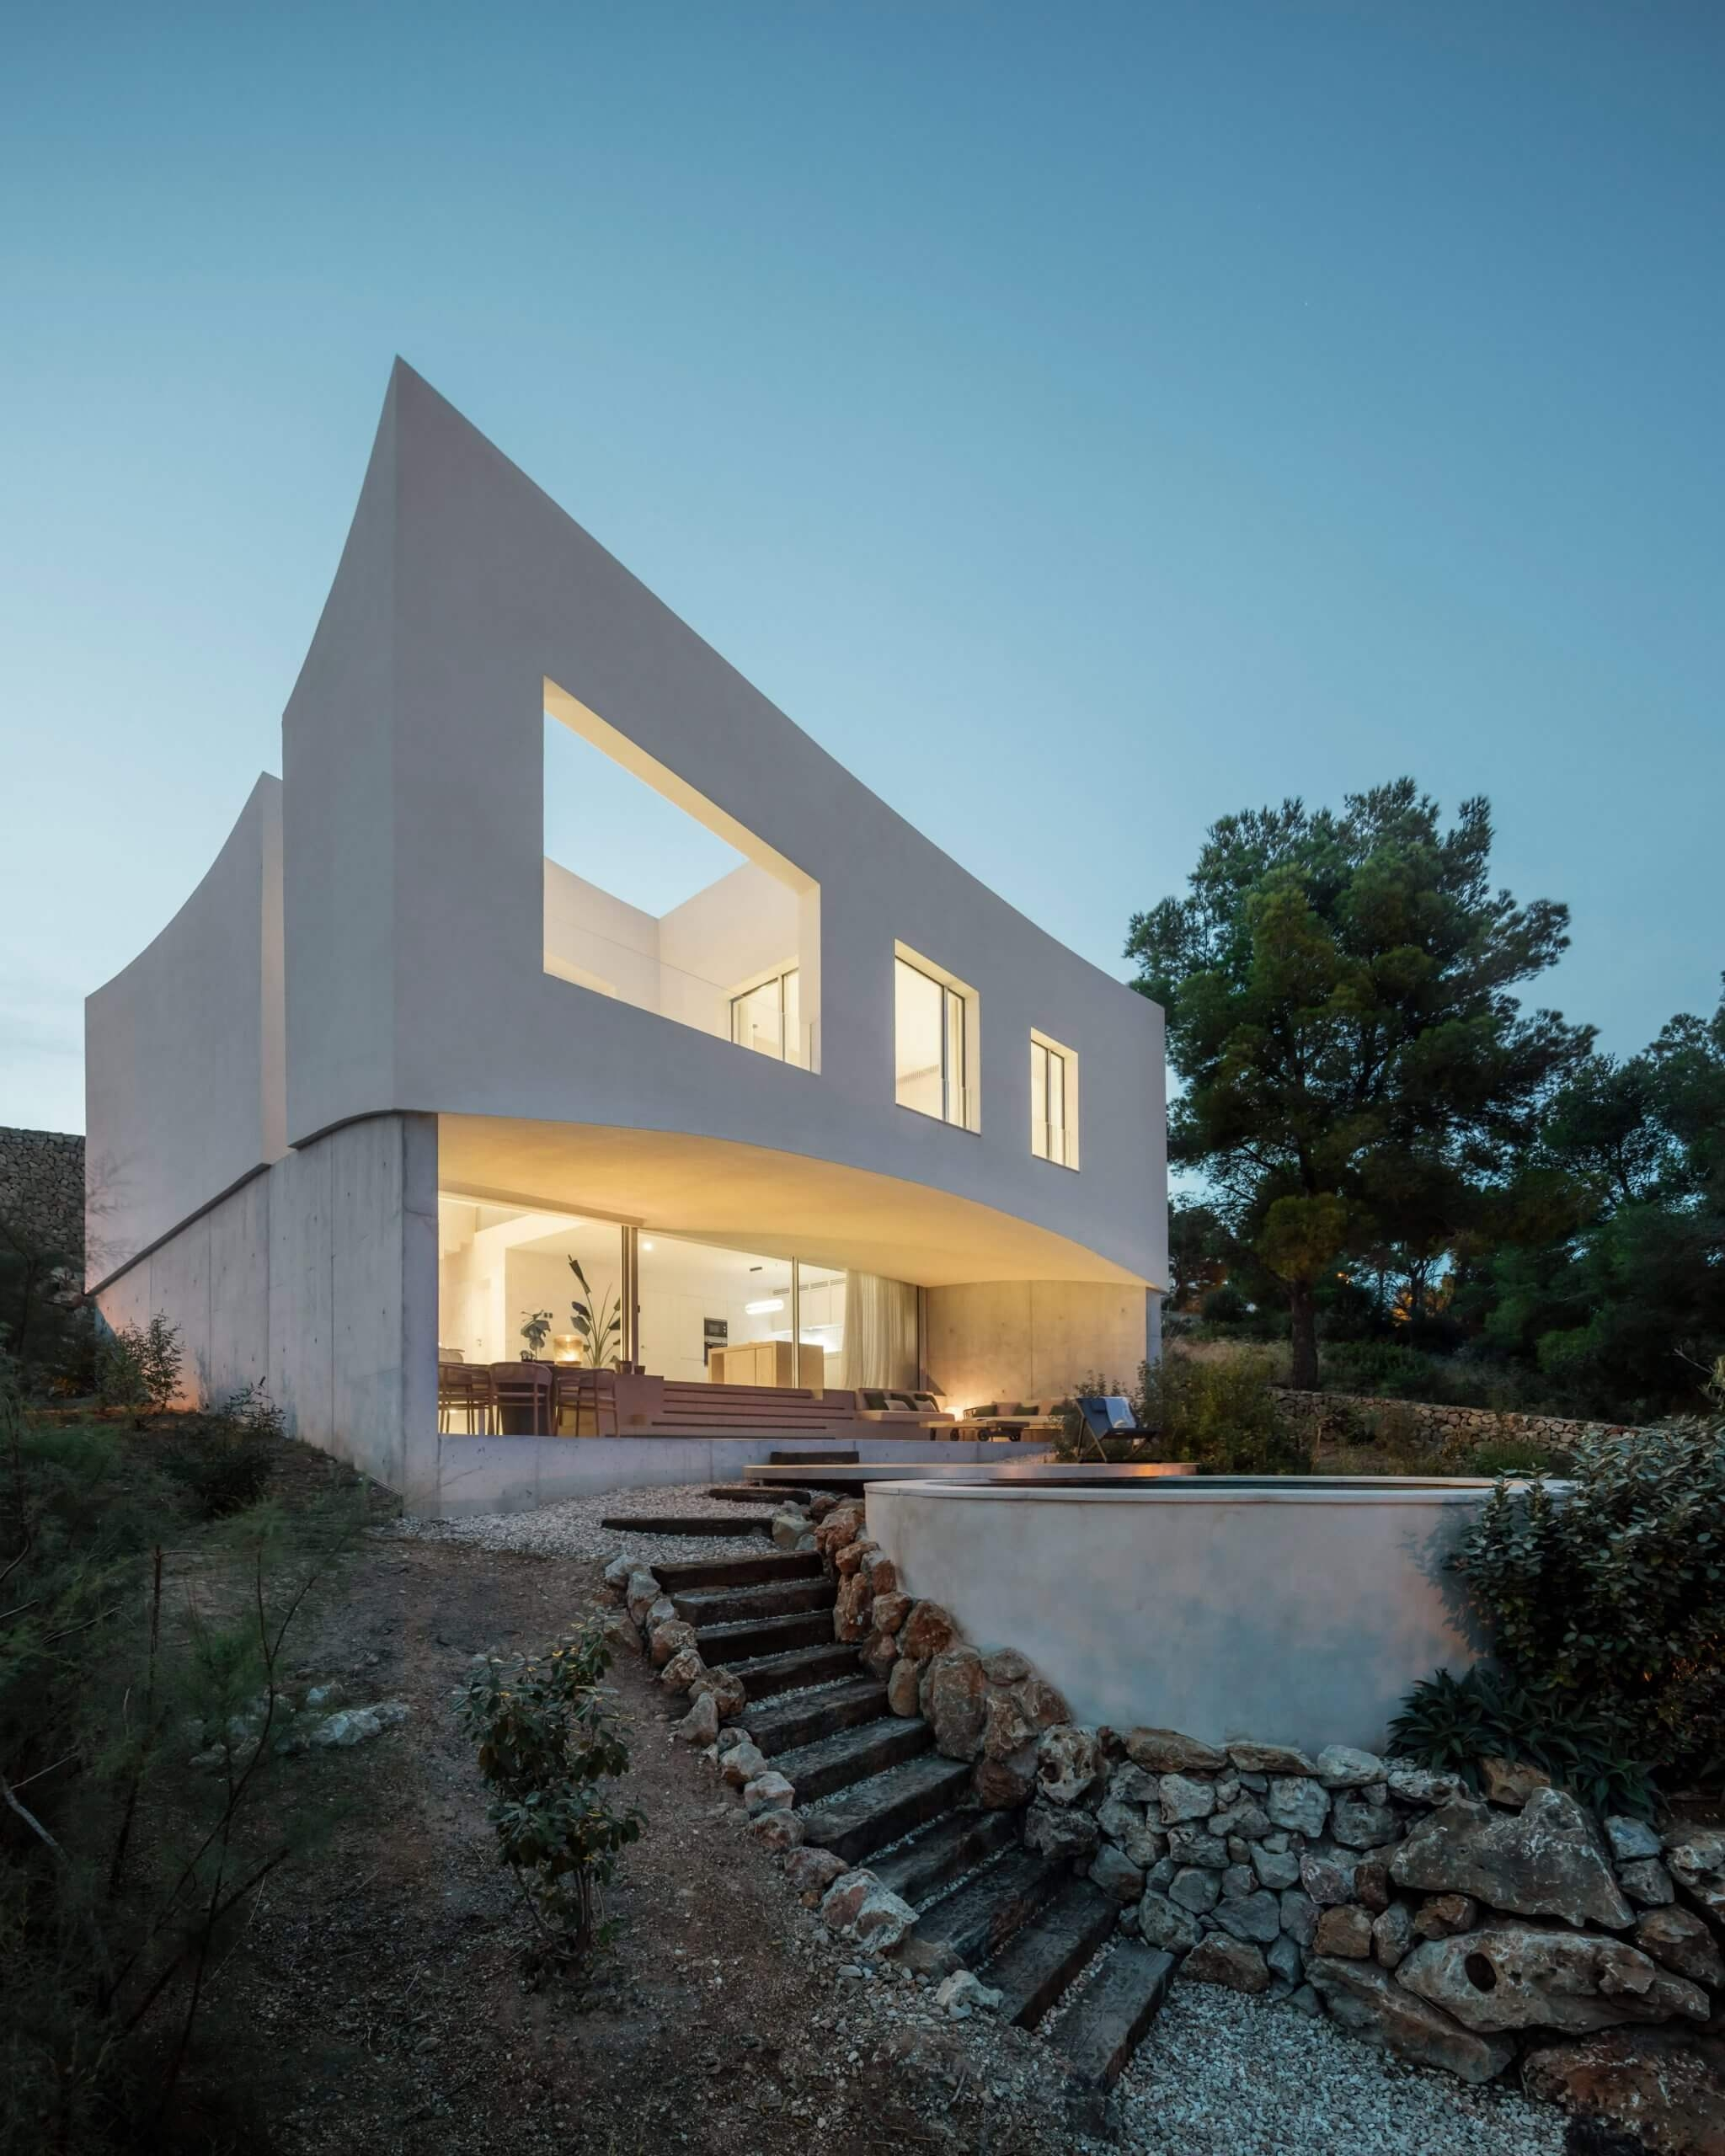 nomo studio curved house menorca spain architecture residential dezeen 2364 col scaled 1